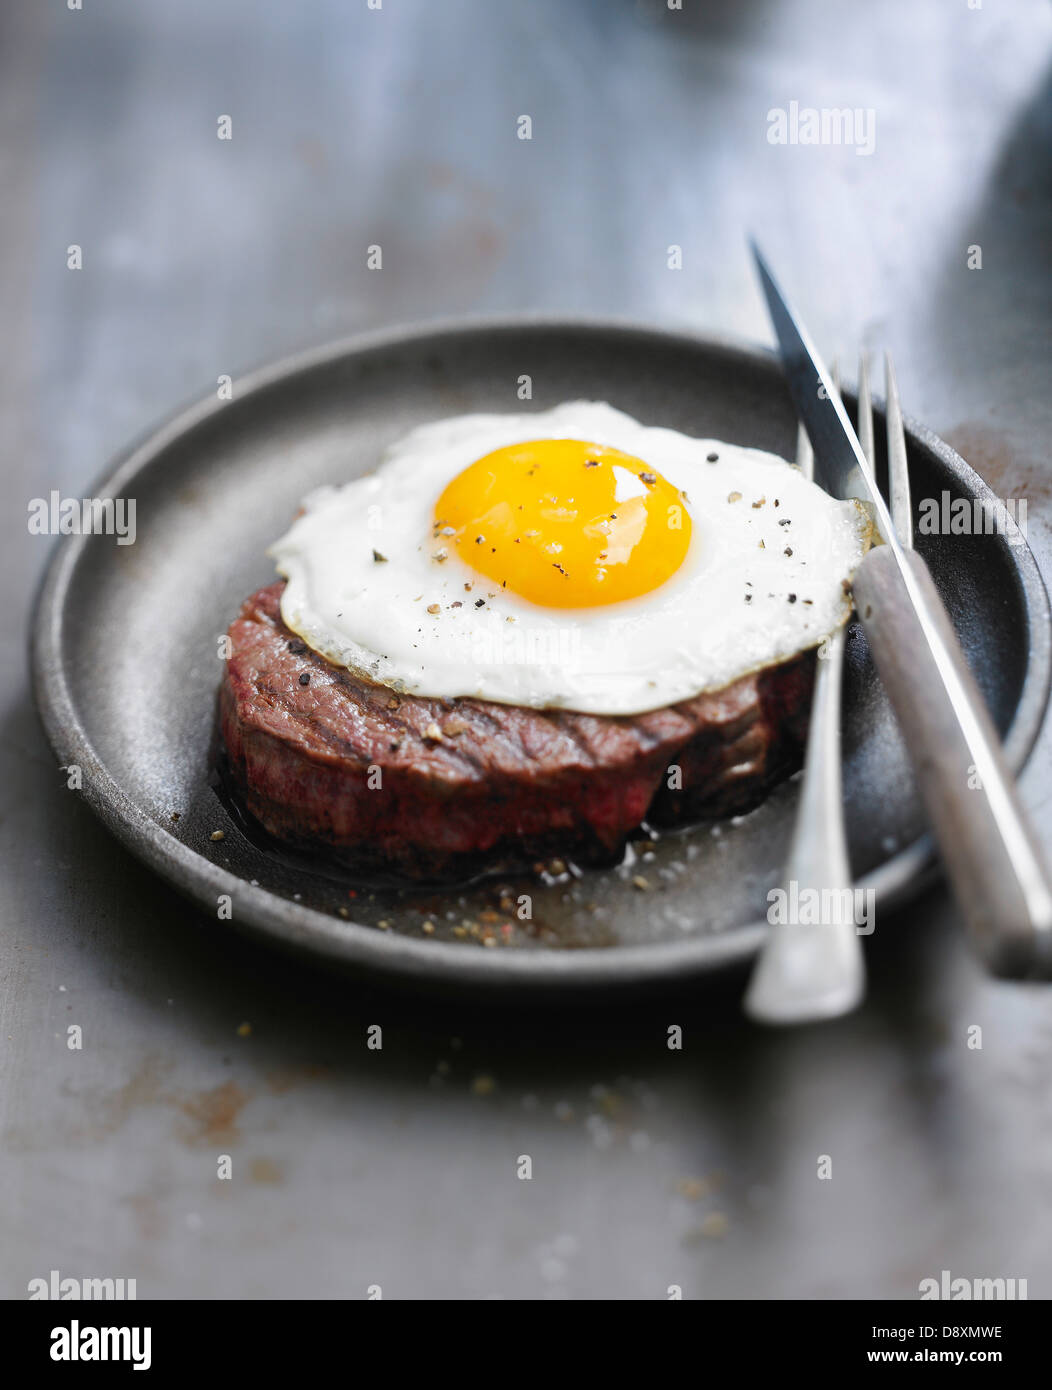 Beef fillet topped with a fried egg - Stock Image